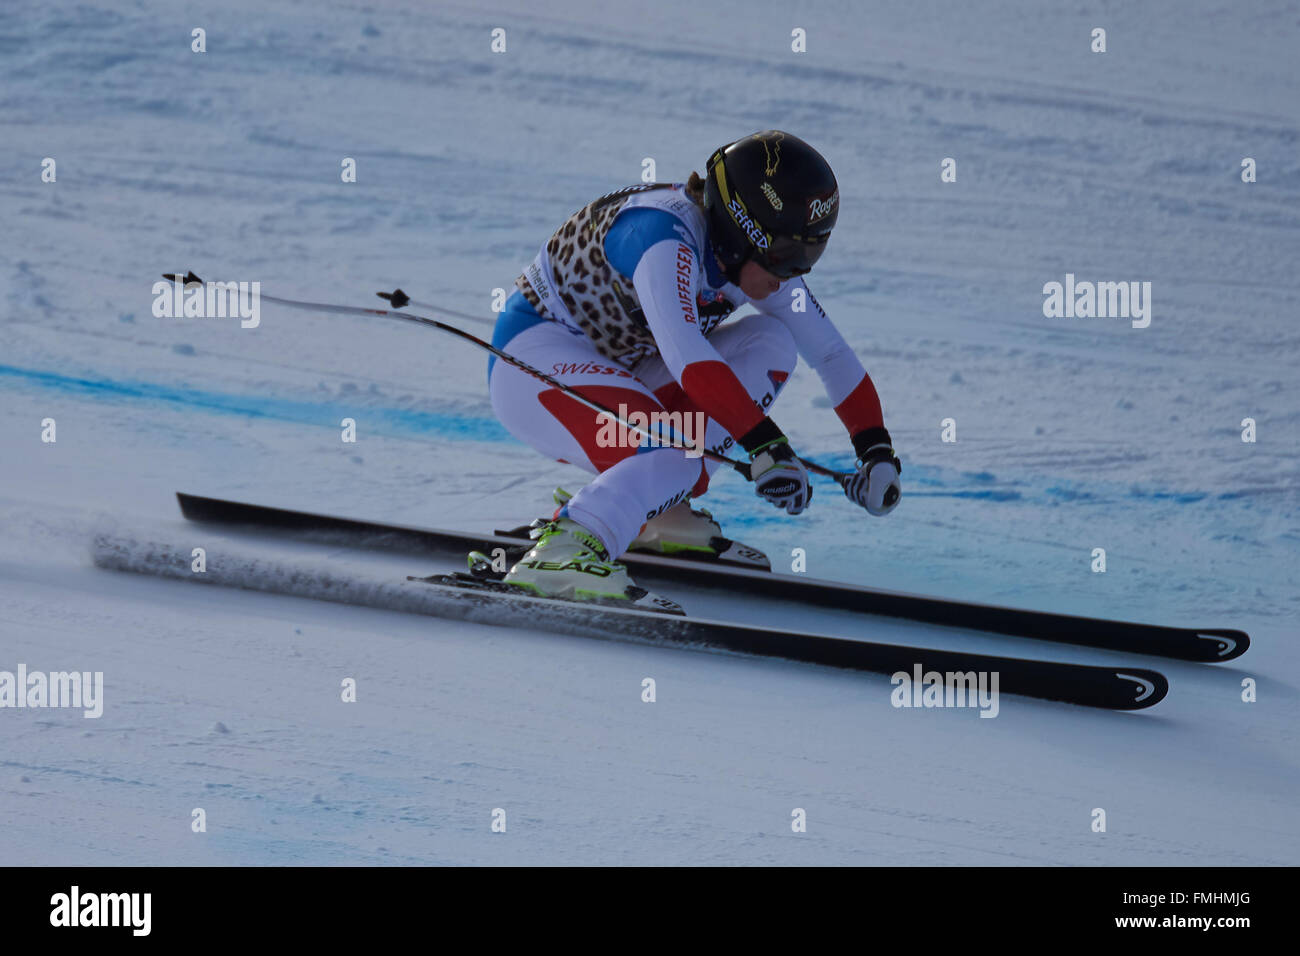 Lenzerheide, Switzerland. 12th March, 2016. Lara Gut (SUI) during her run in the Ladies' Super G at the Audi FIS - Stock Image